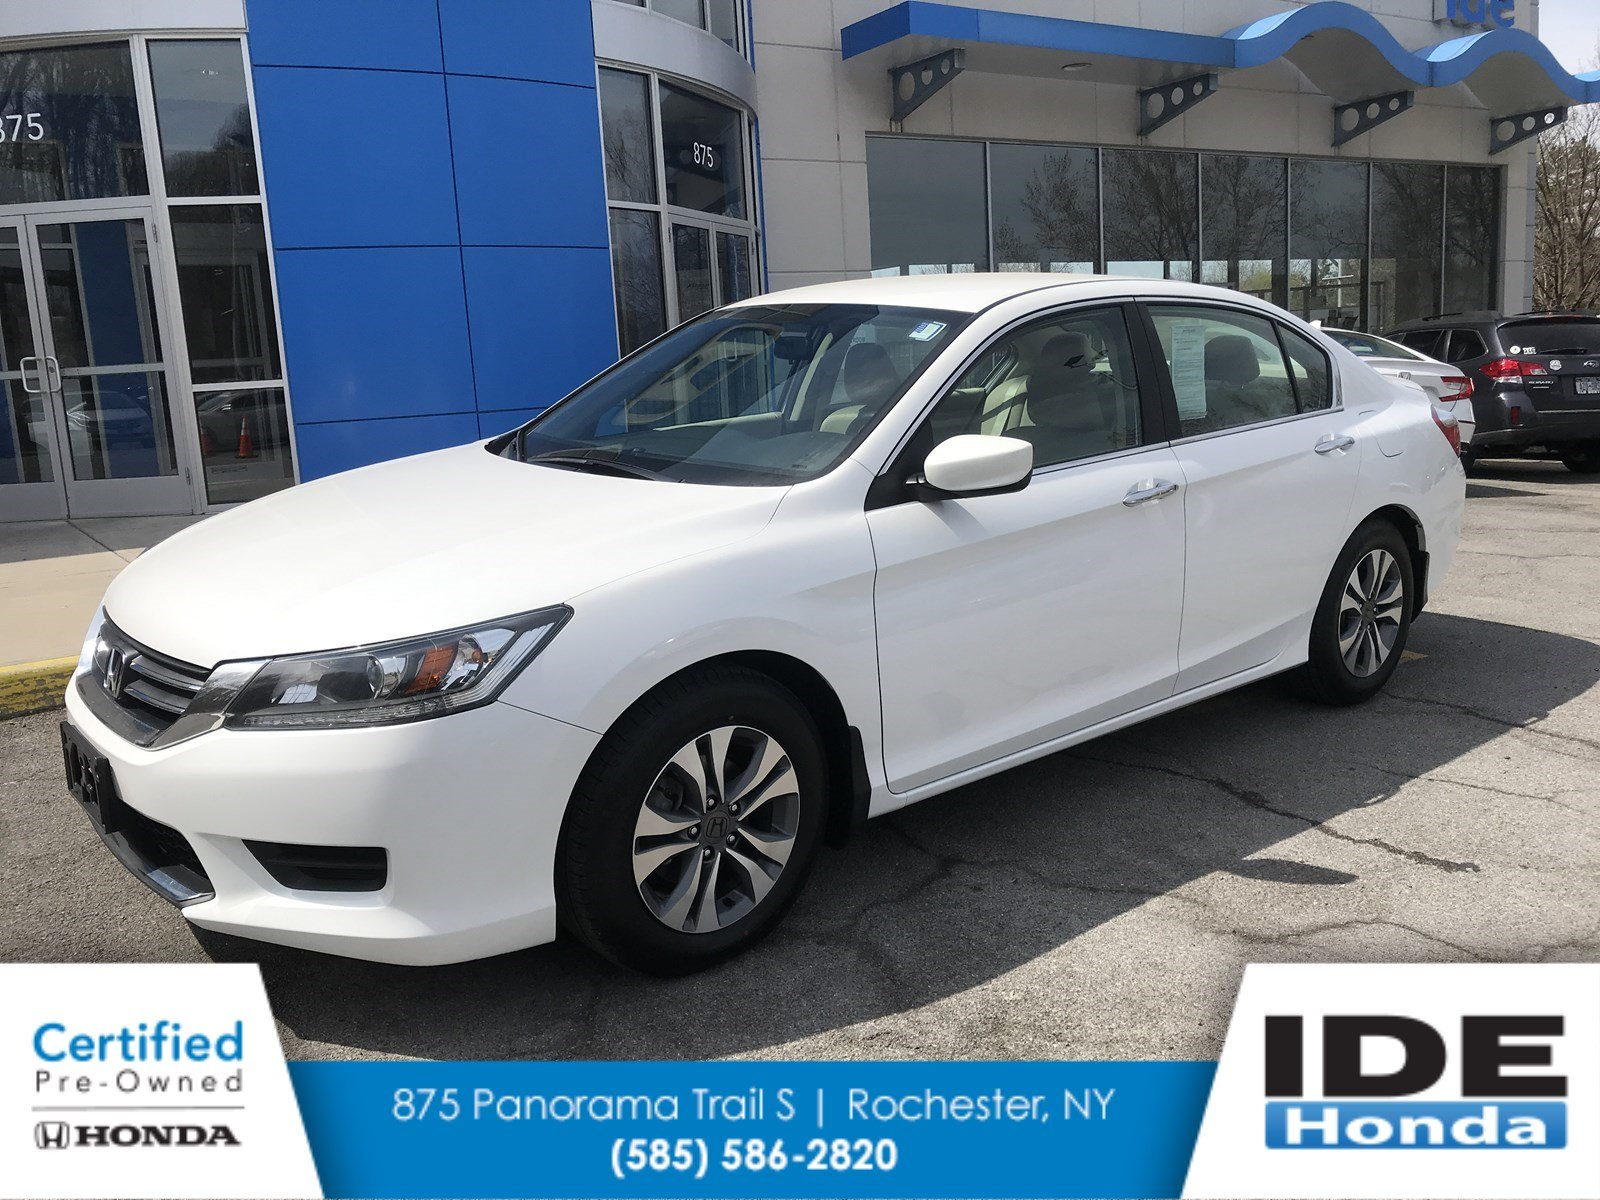 Certified Pre Owned 2015 Honda Accord Sedan LX